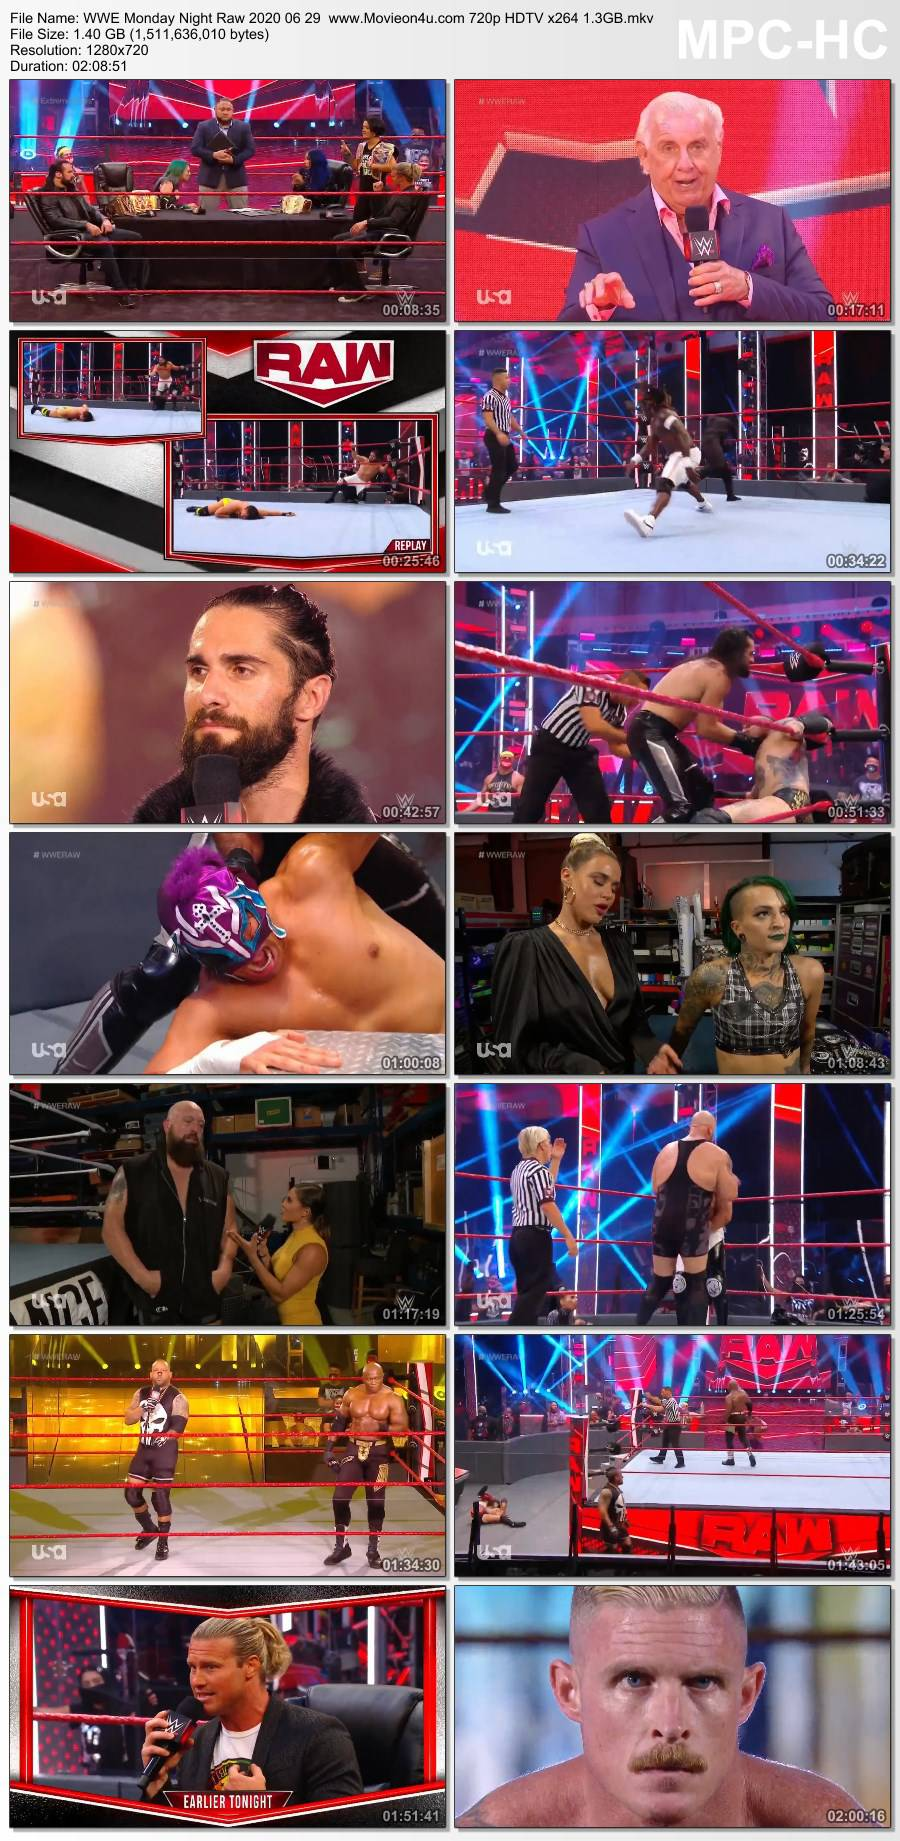 WWE Monday Night Raw 2020 06 29 720p HDTV x264 1.3GB Download HD